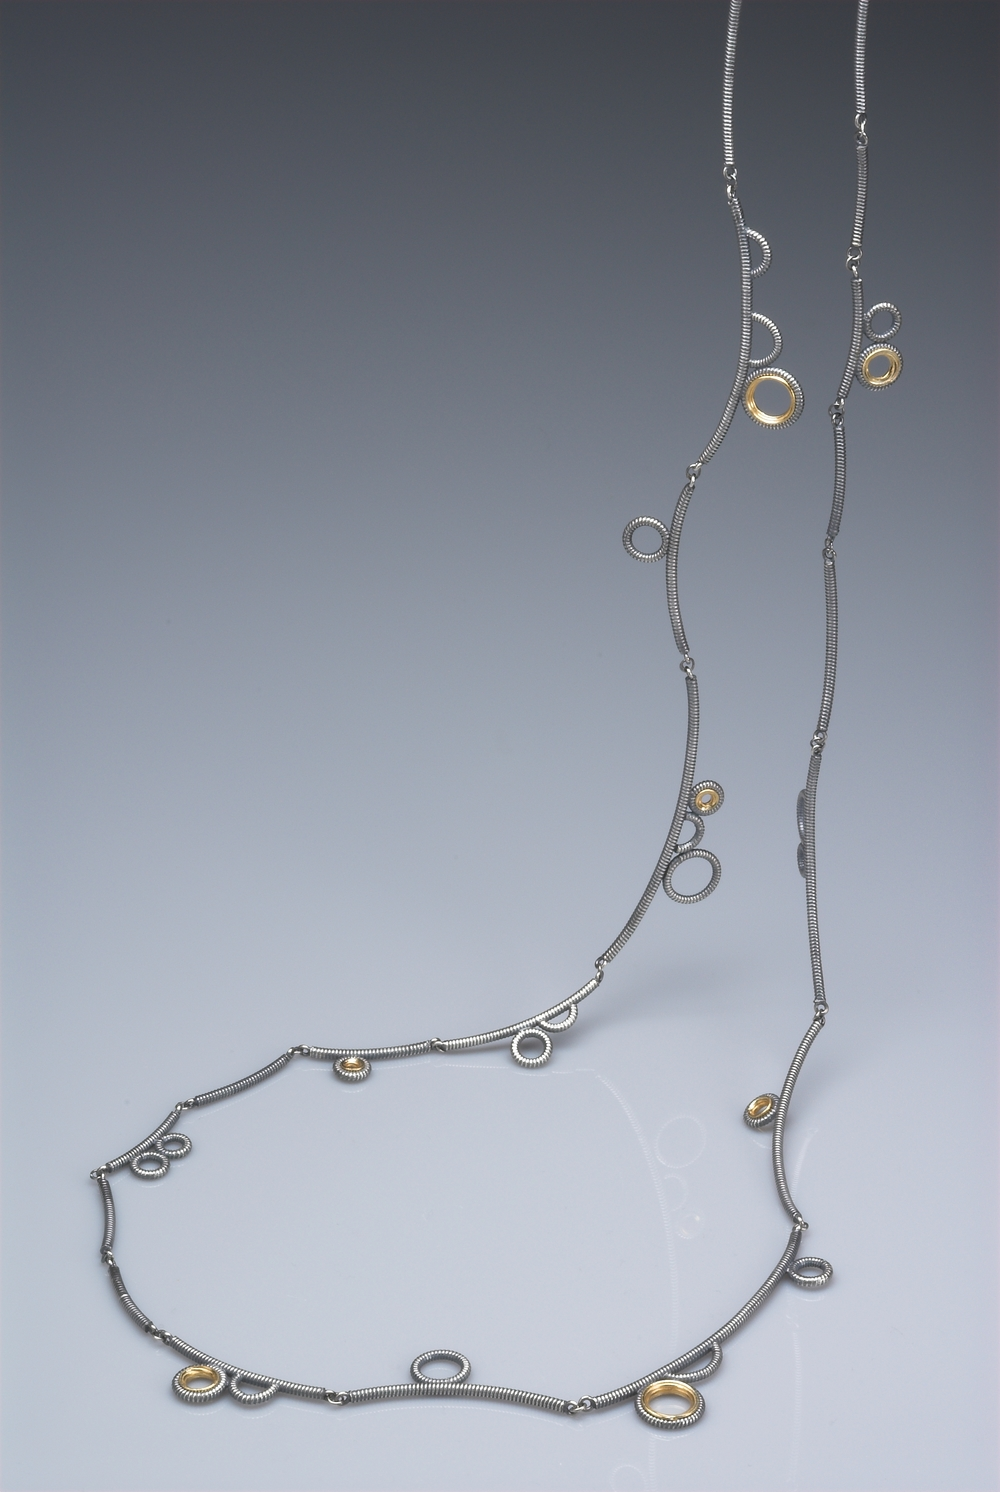 Silver necklace- oxidised silver and gold plate £440 @90cm long